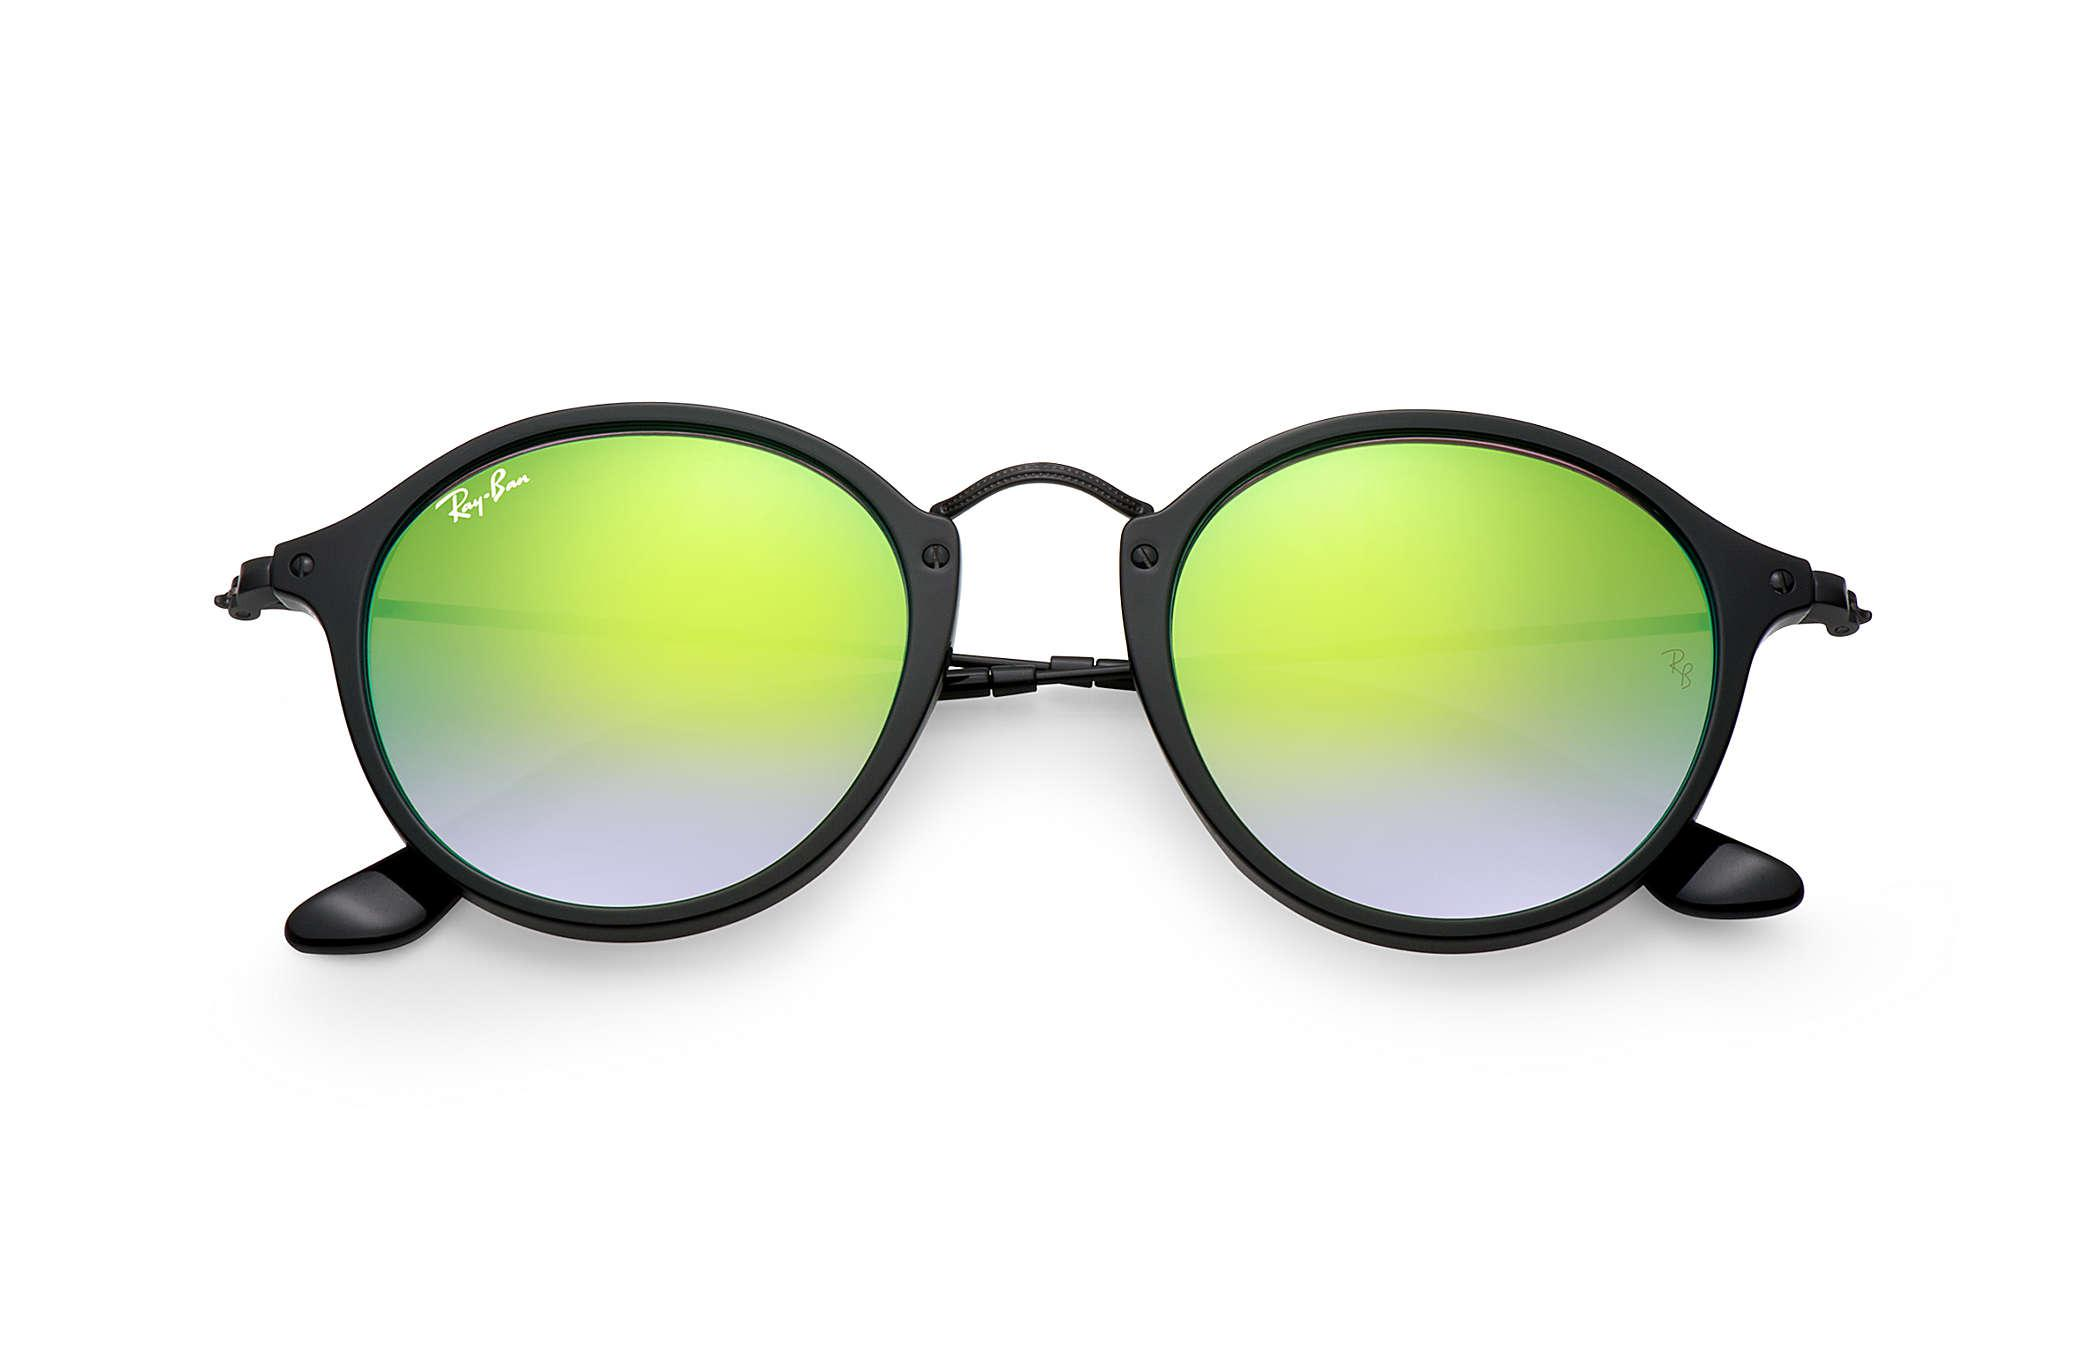 7acb26f022a Ray-Ban - Green Round Fleck Flash Lenses Gradient - Lyst. View fullscreen